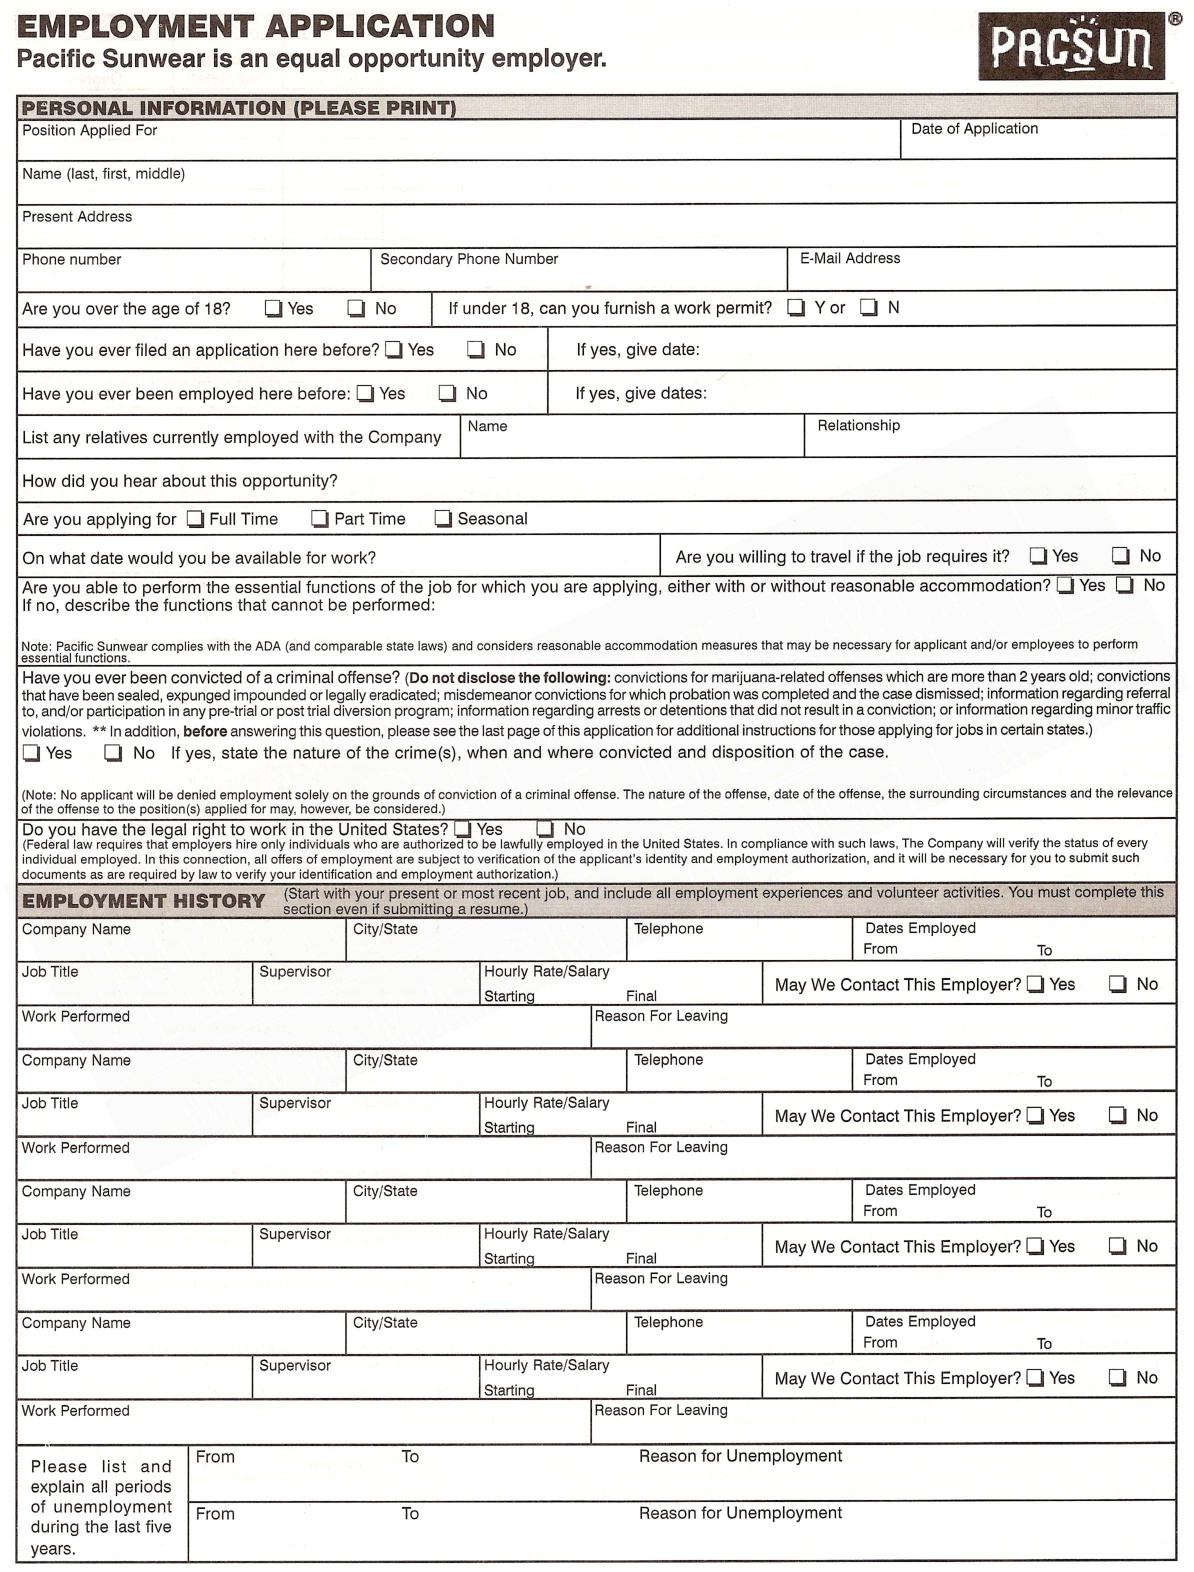 pacsun application | Pacsun employment application form printable ...